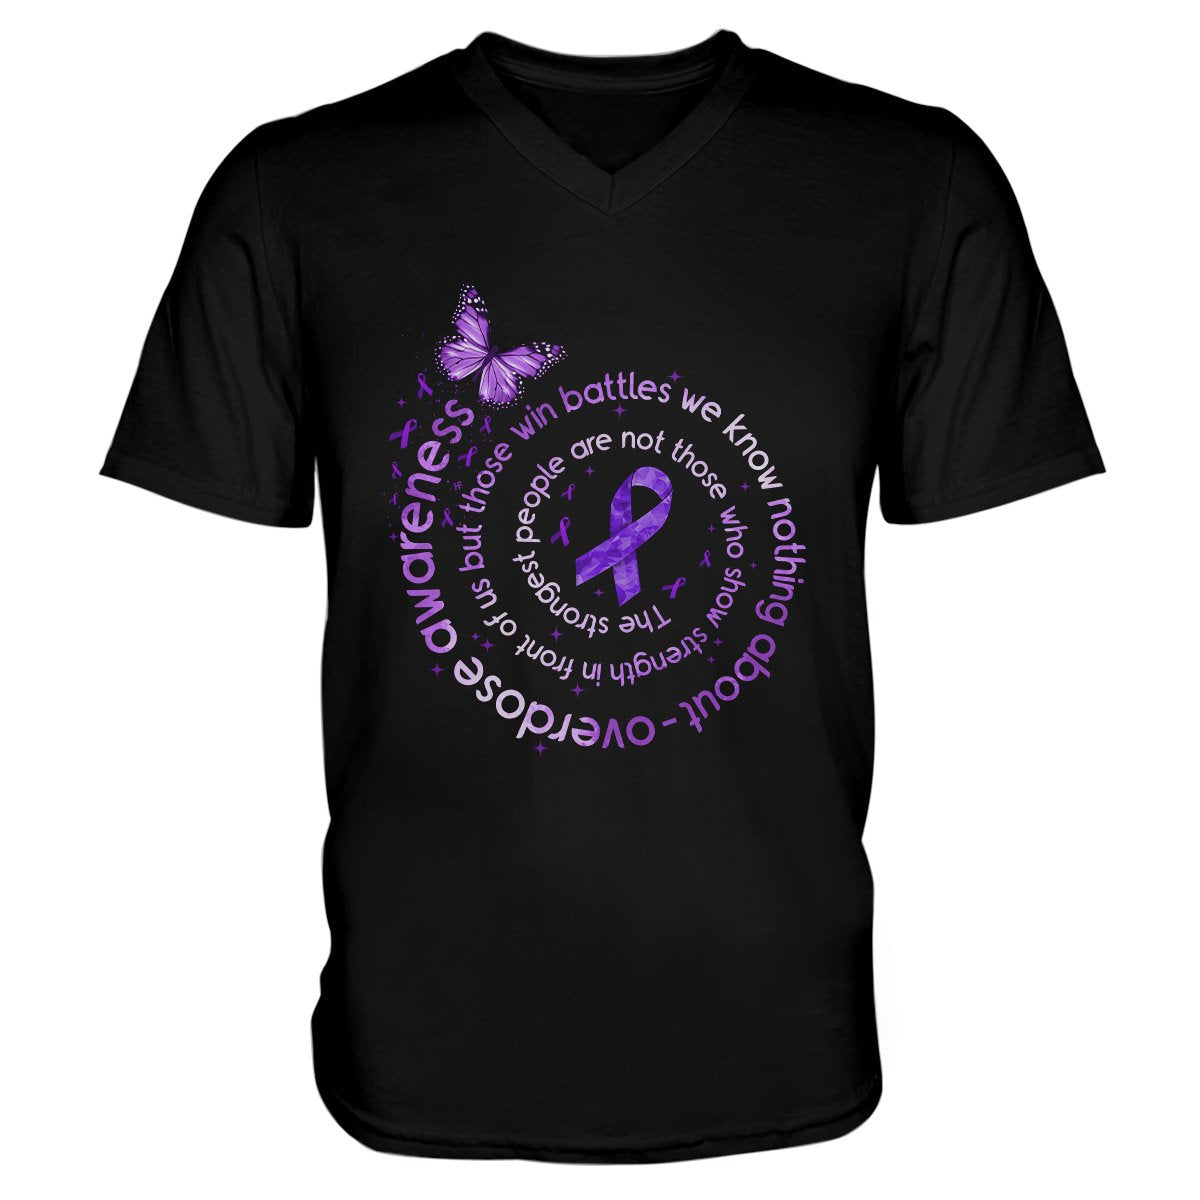 The Strongest People Overdose Awareness Men V-neck T-shirt